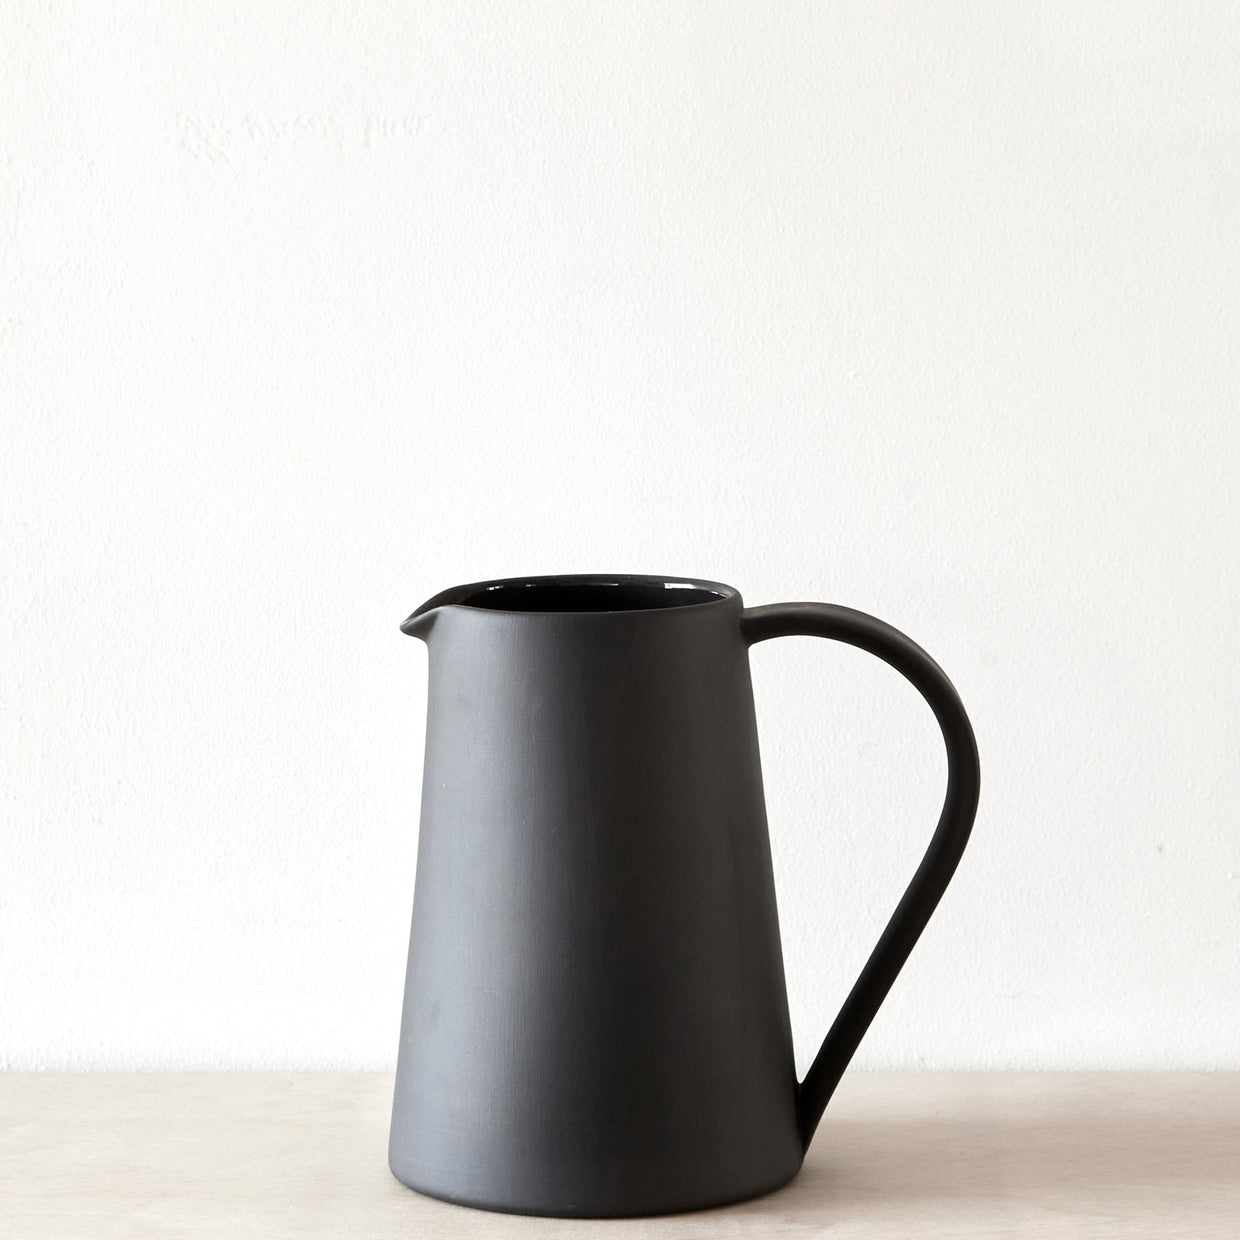 Pottery Pitcher - Black Stoneware